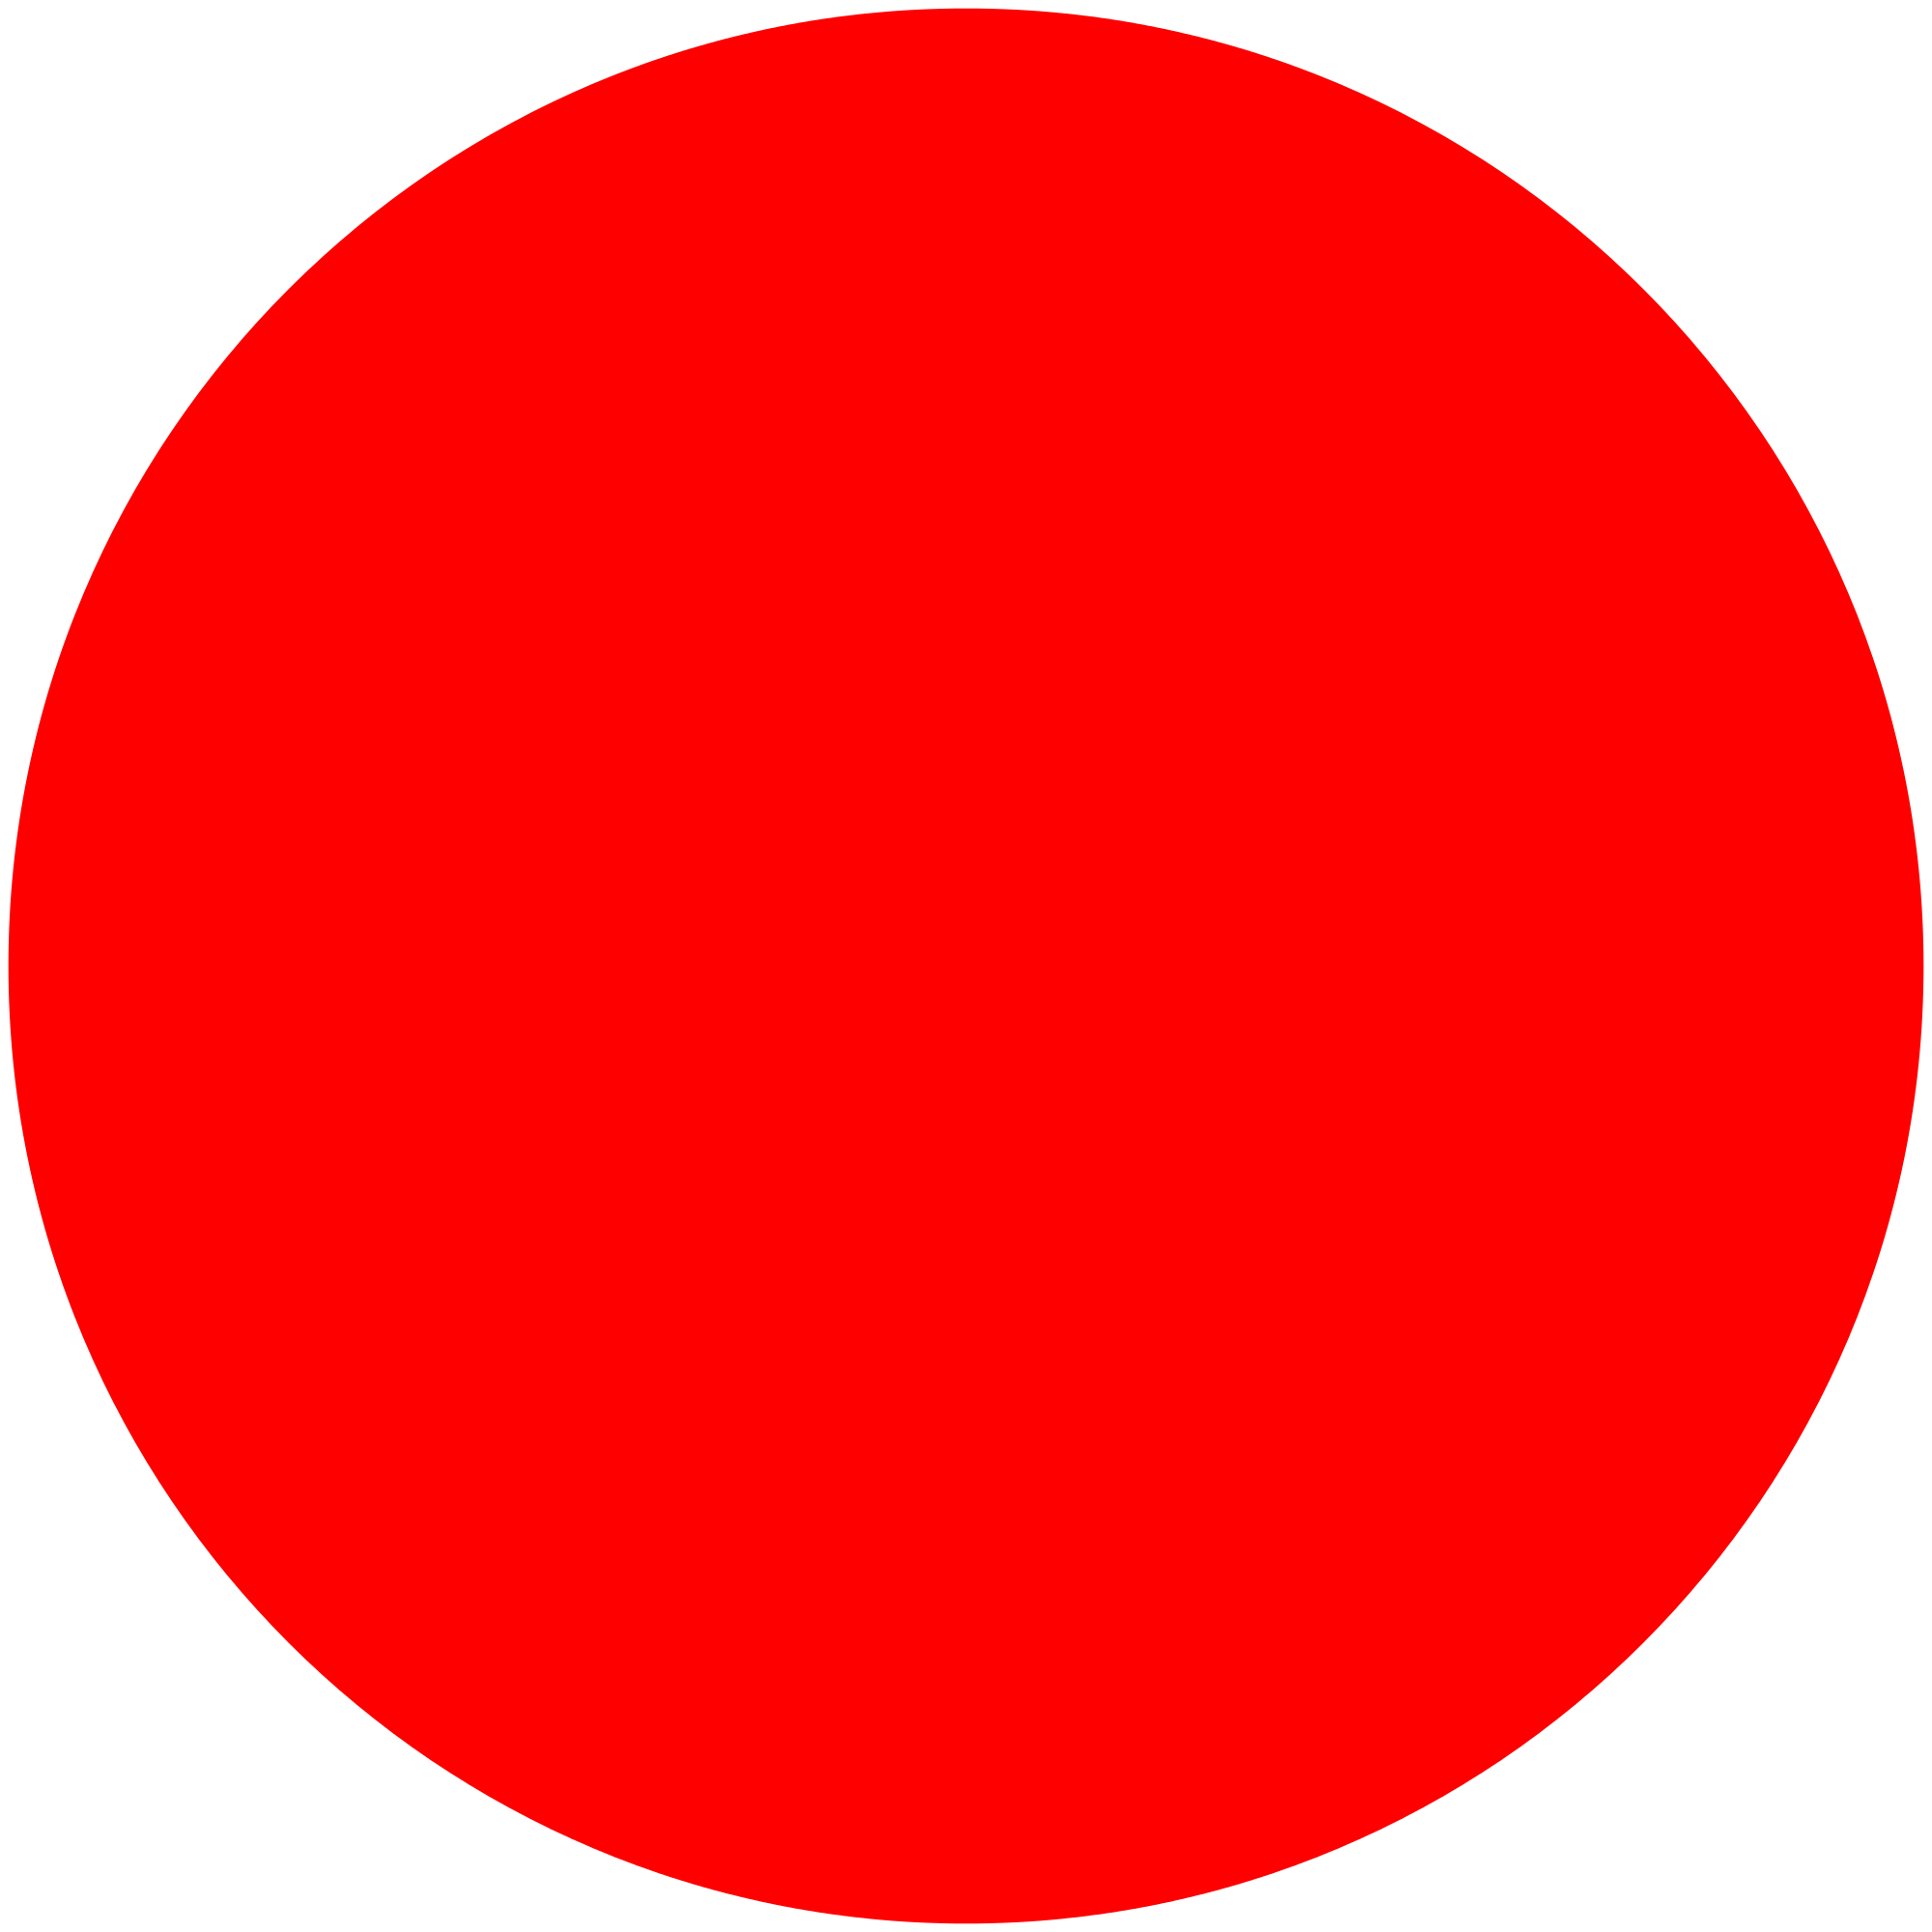 Red circle png. Transparent stickpng